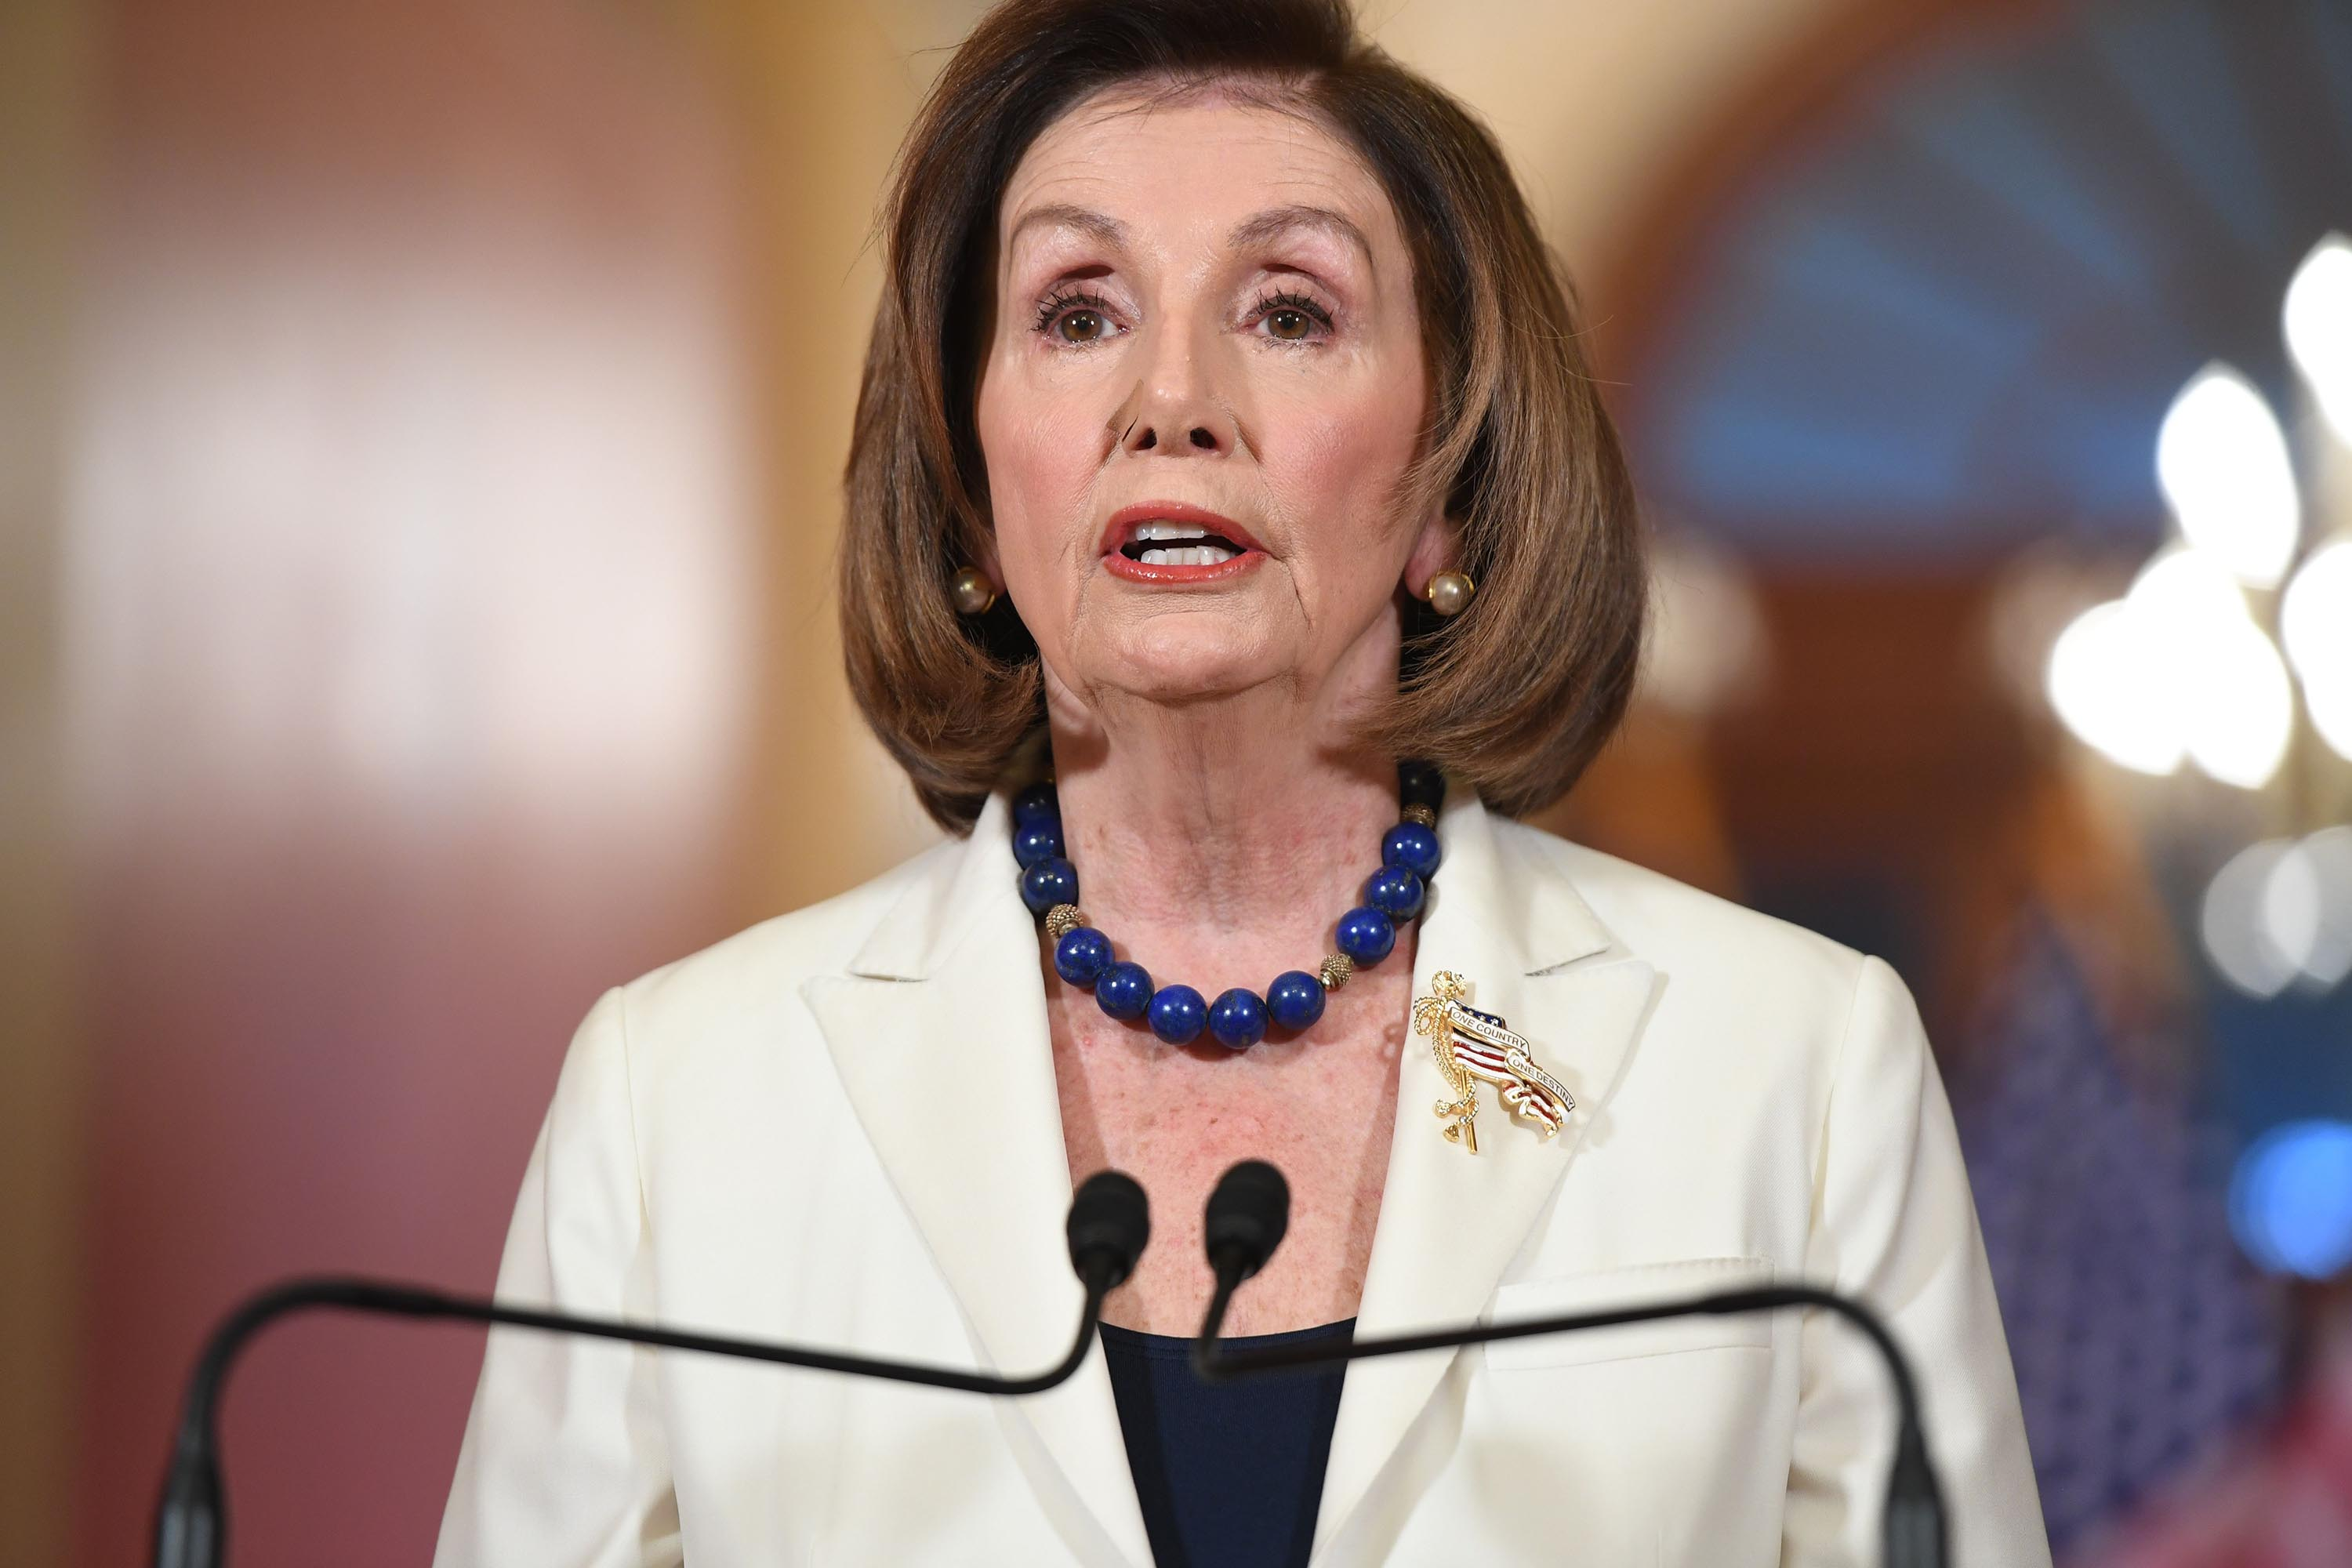 Pelosi: 'No choice' but to move forward with articles of impeachment